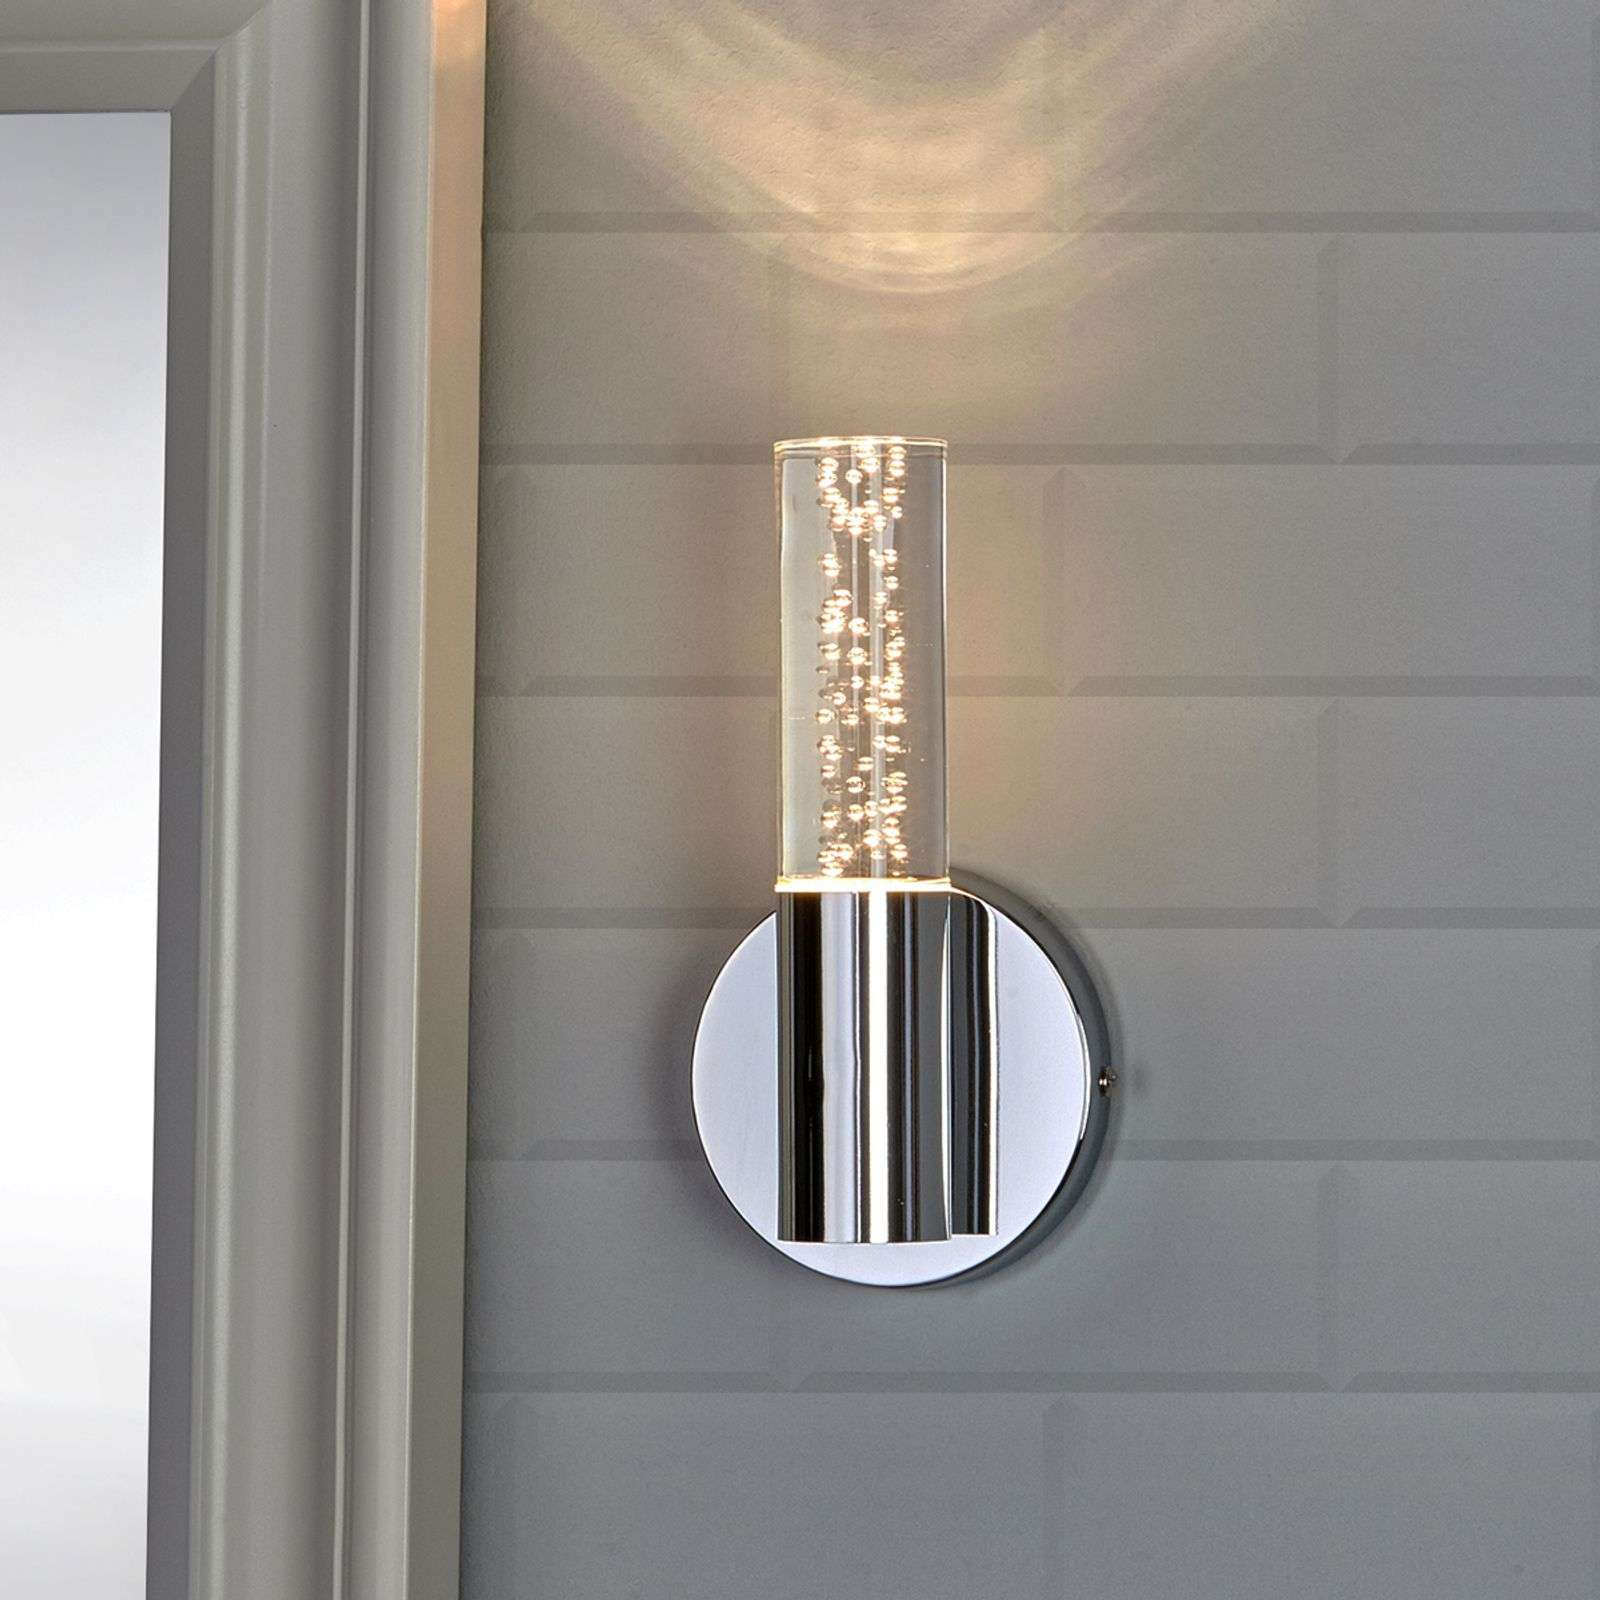 Decorativa applique LED Duncan per bagni